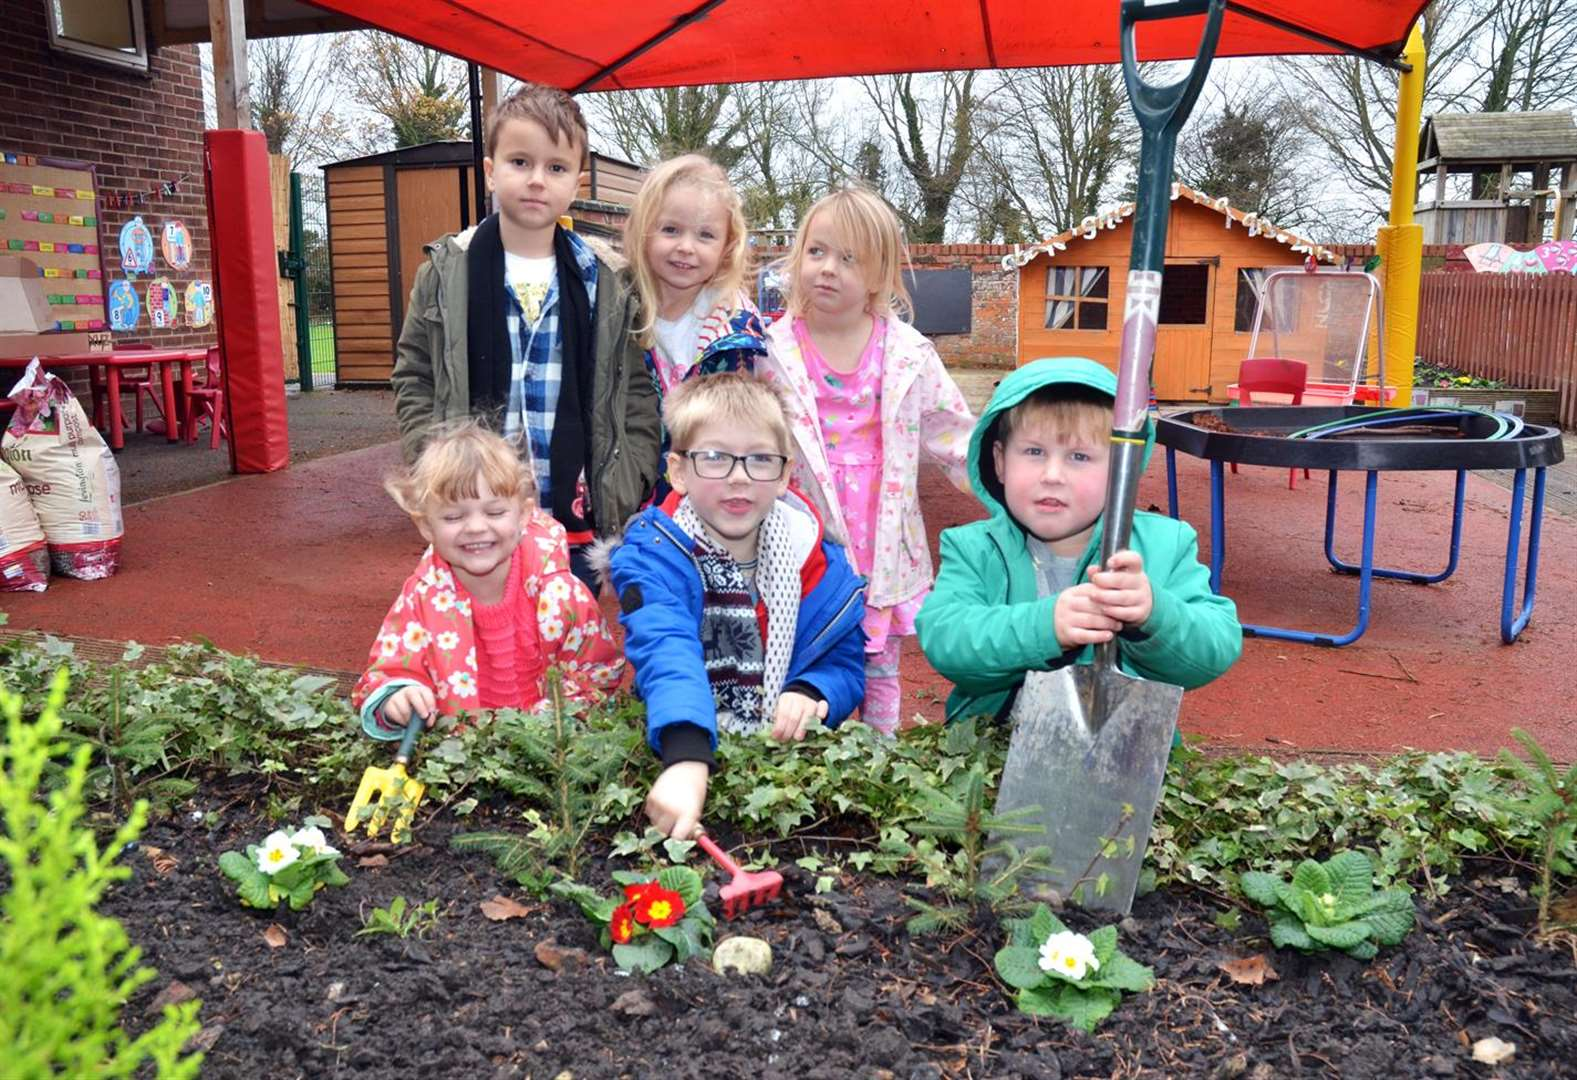 Green-fingered youngsters get planting